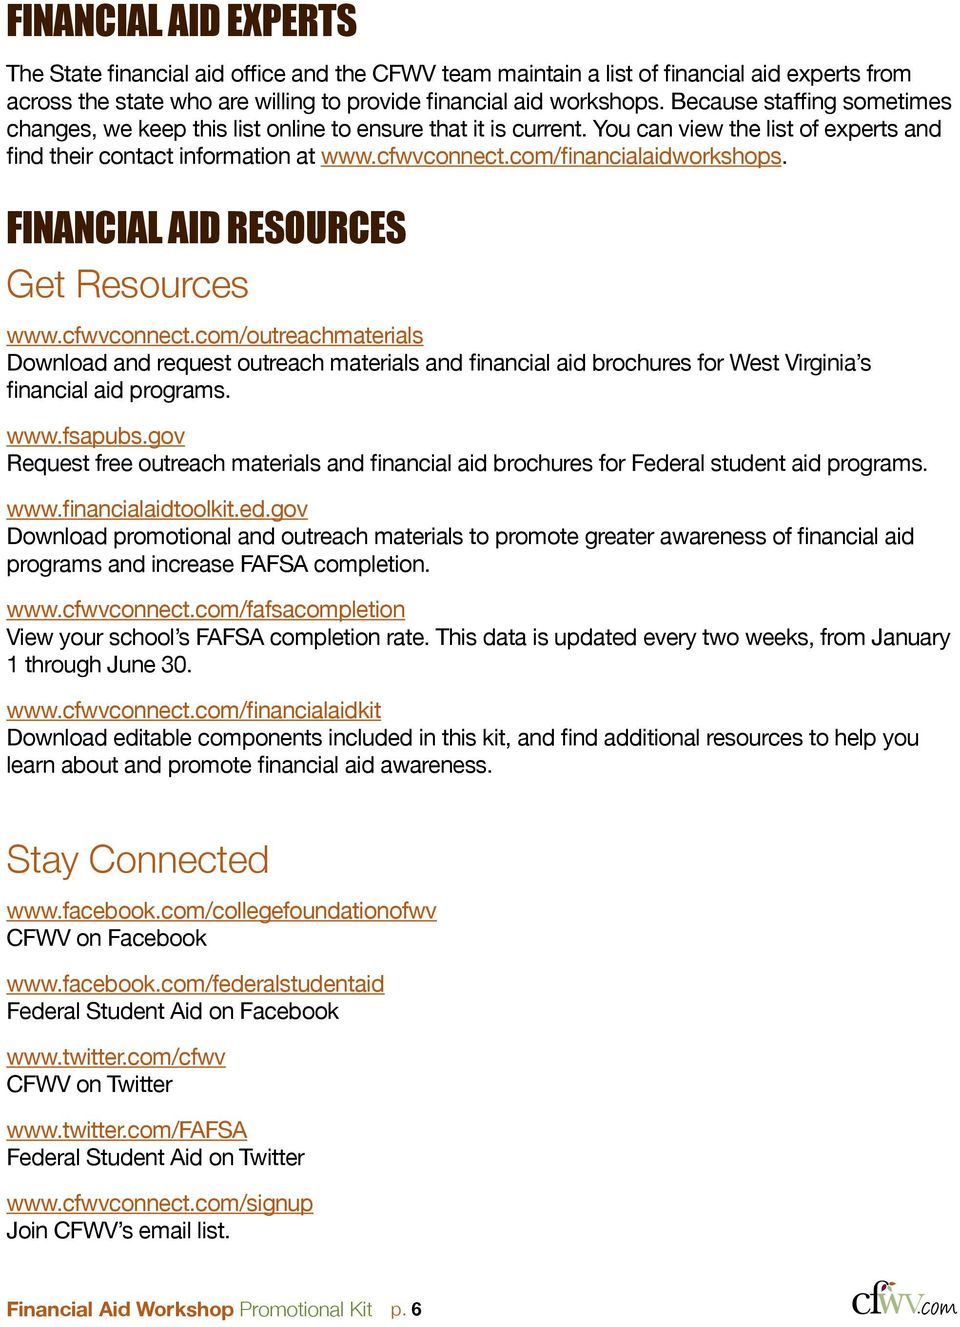 FINANCIAL AID RESOURCES Get Resources www.cfwvconnect.co/outreachaterials Download and request outreach aterials and financial aid brochures for West Virginia s financial aid progras. www.fsapubs.